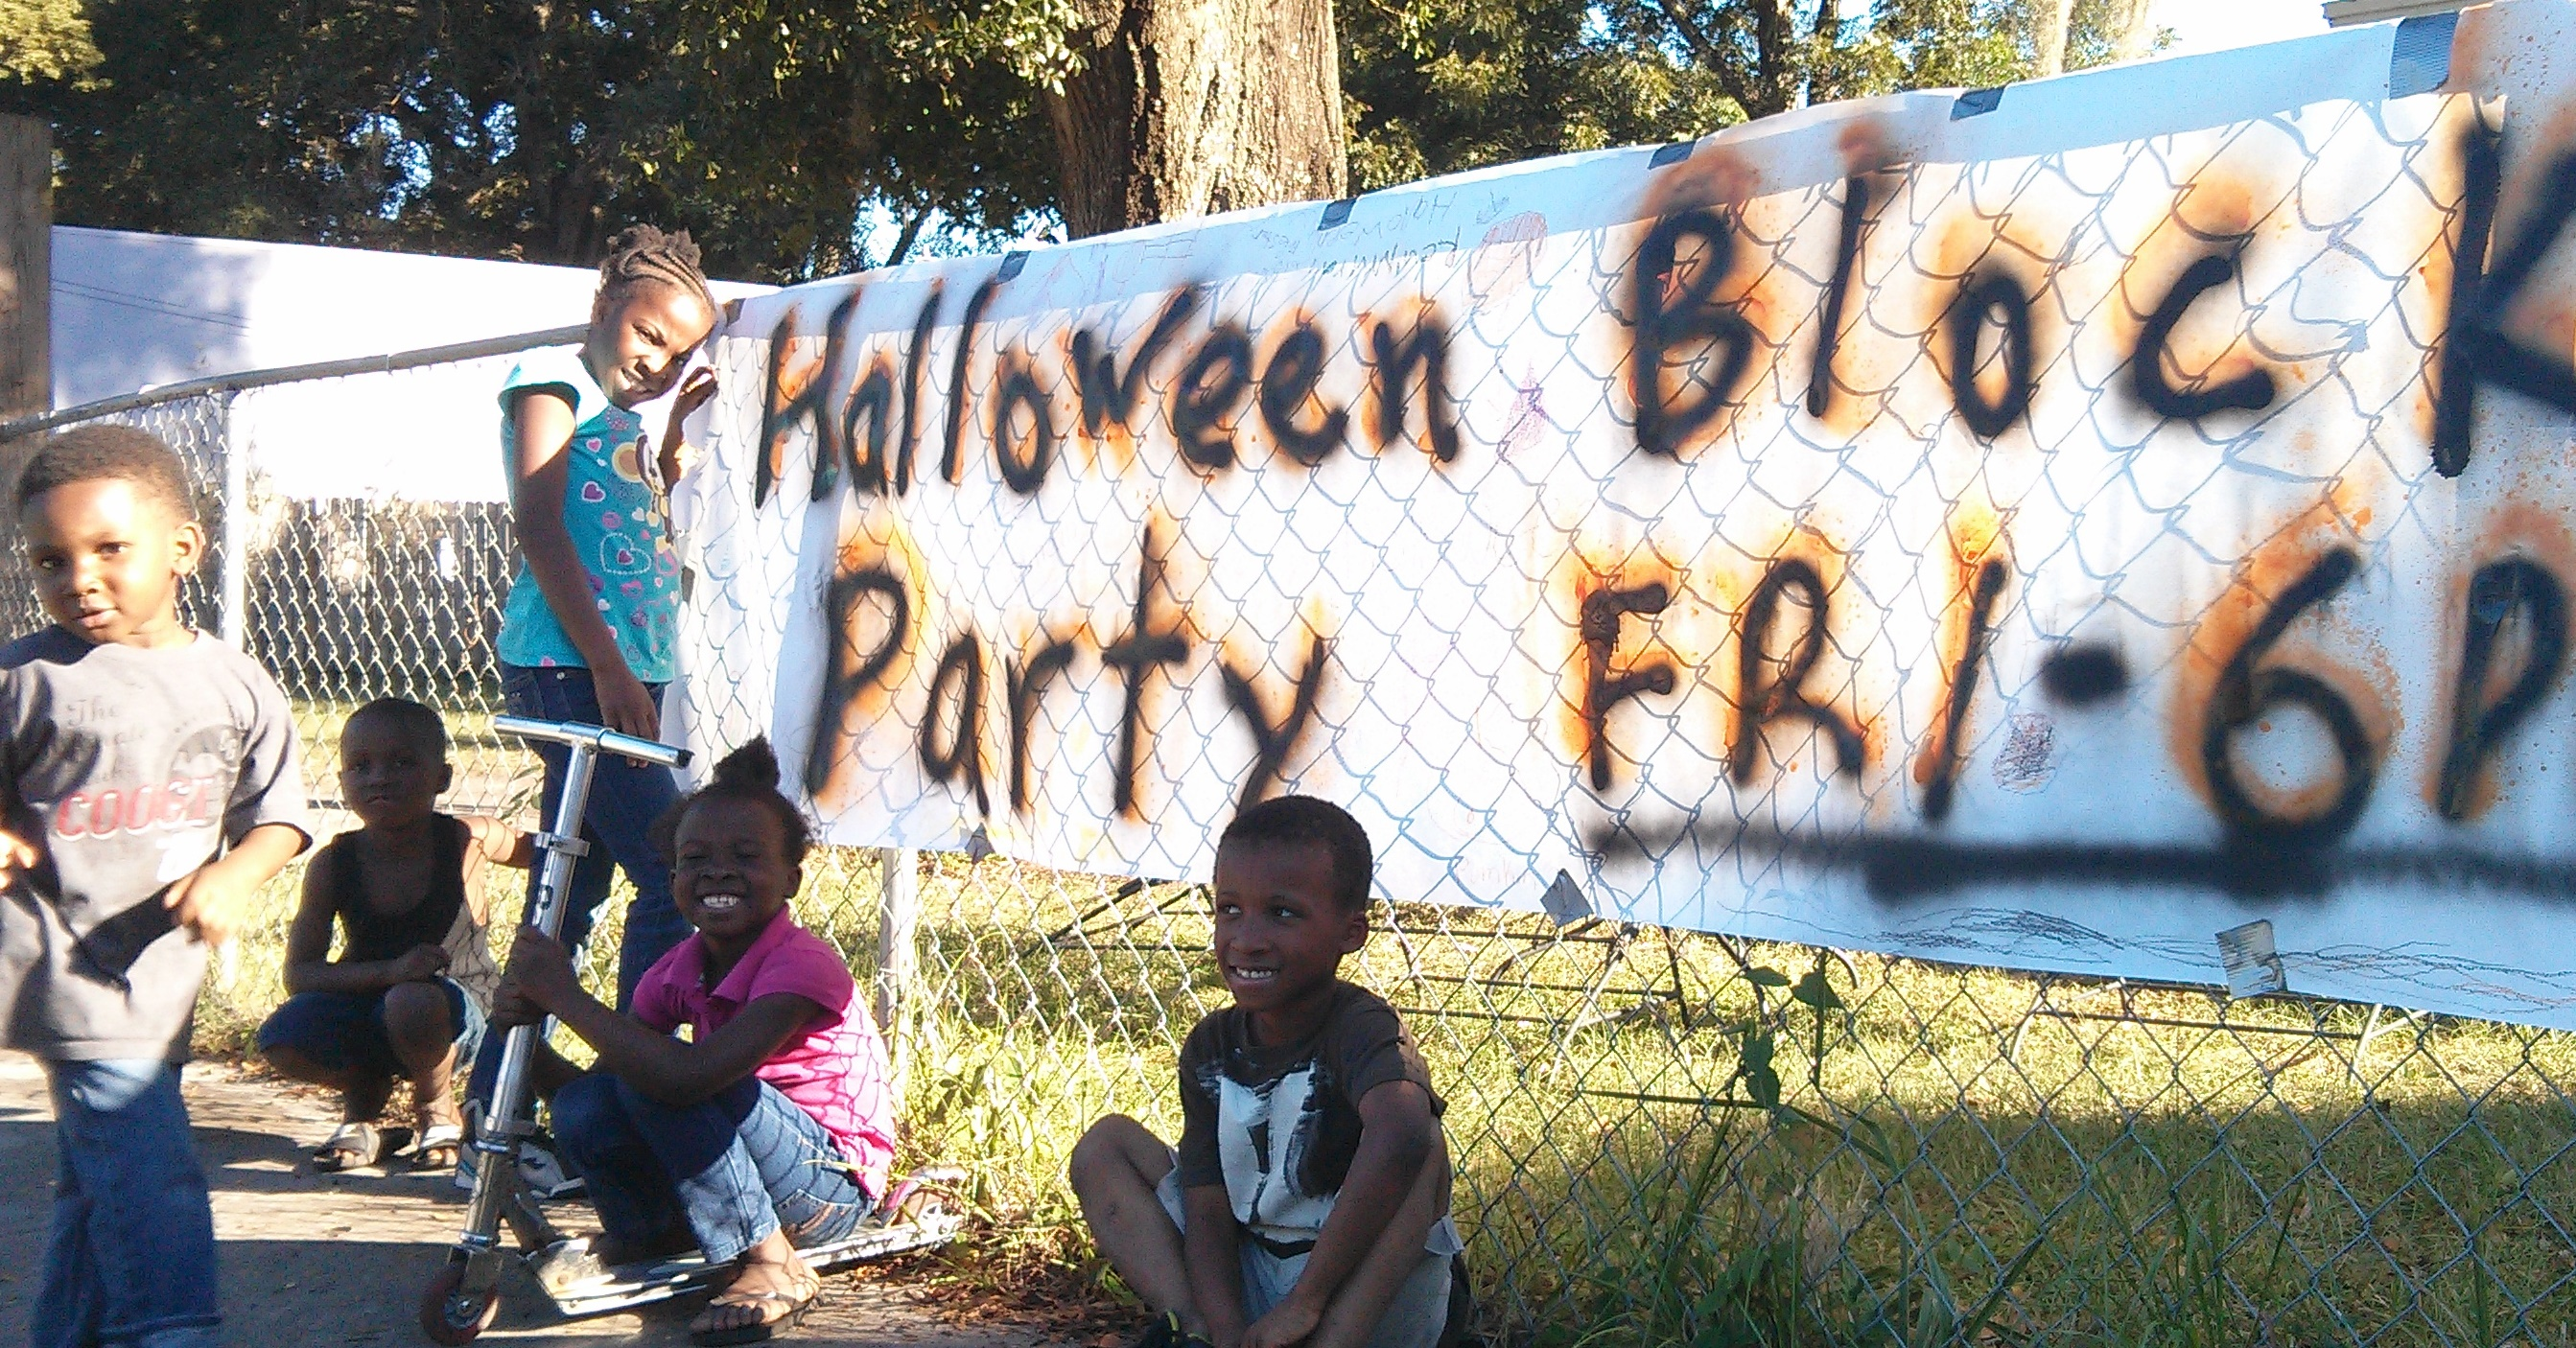 Pink House Halloween Block Party.jpg